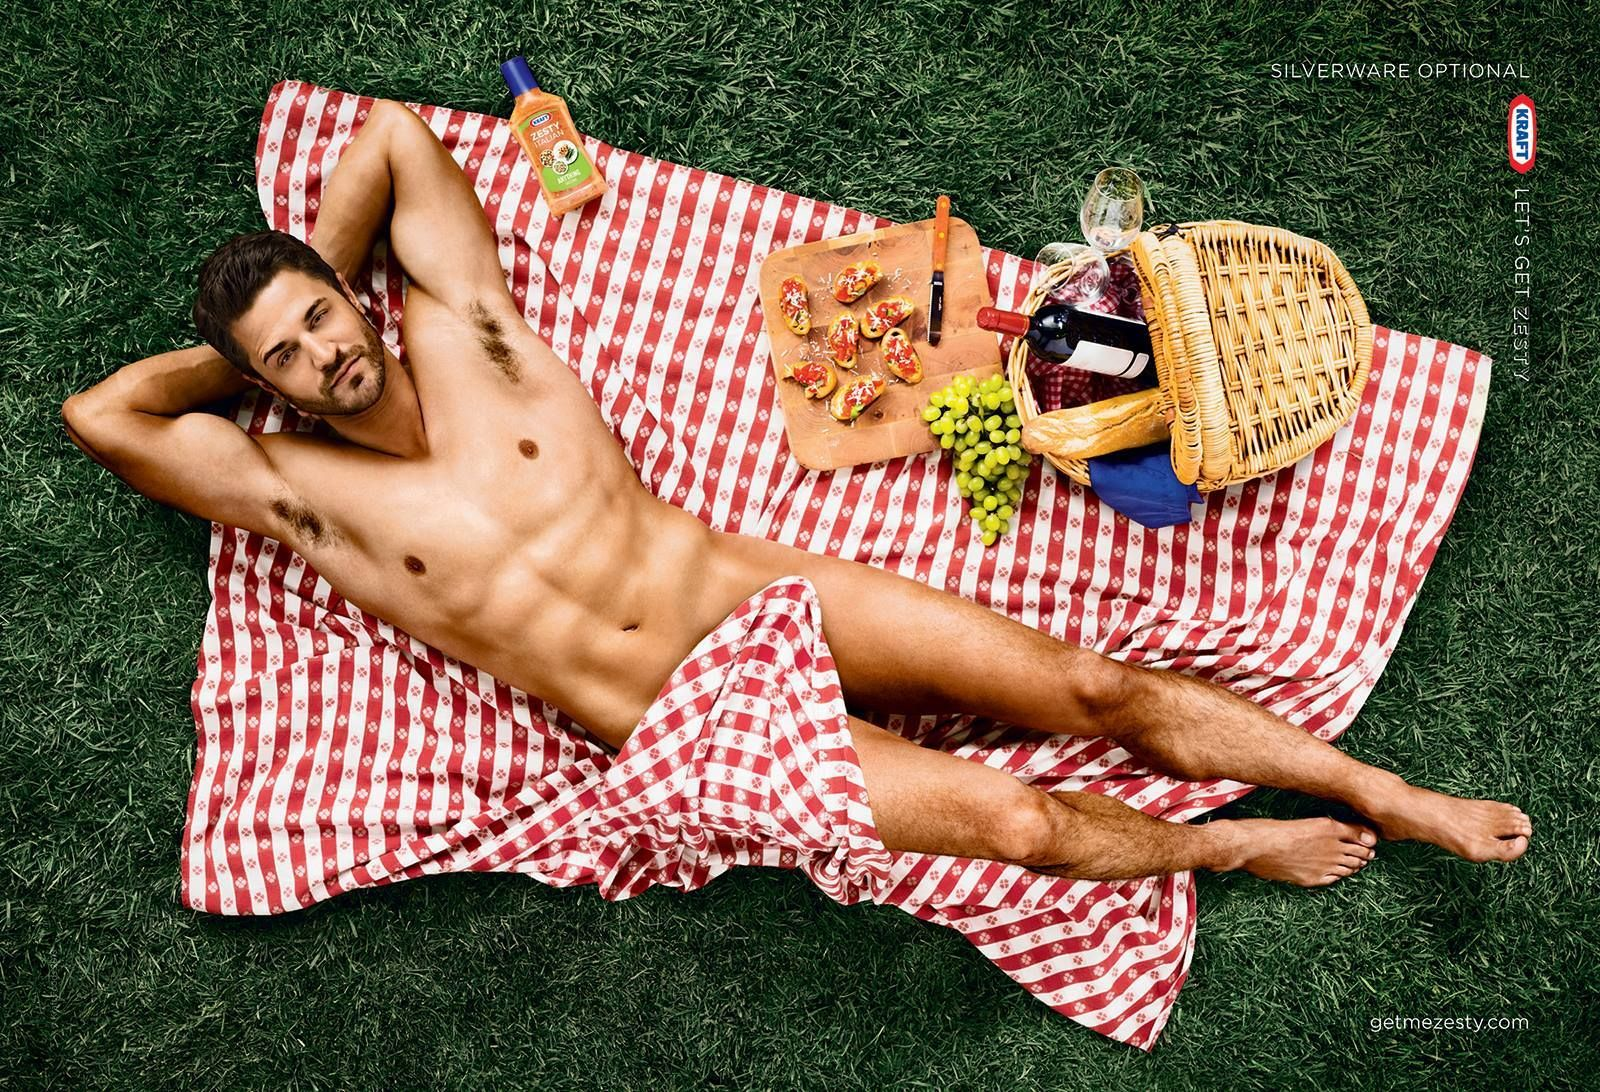 Right! sexy photos of woman on picnic something is